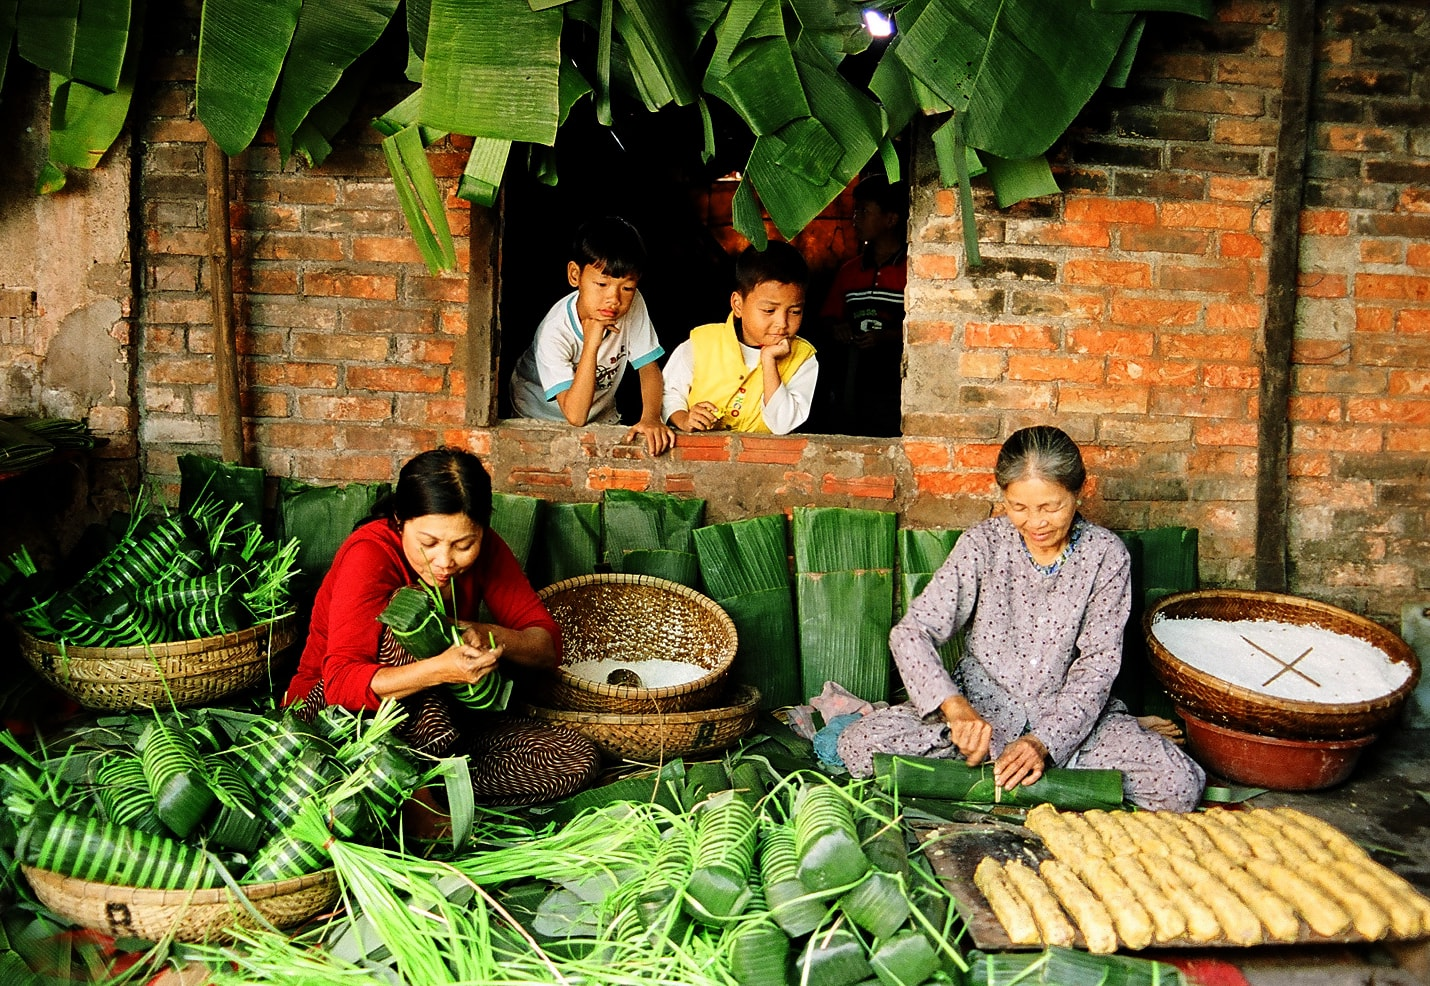 Family members gather to cook Banh Chung or Banh Tet - a special traditional food in New Year festival